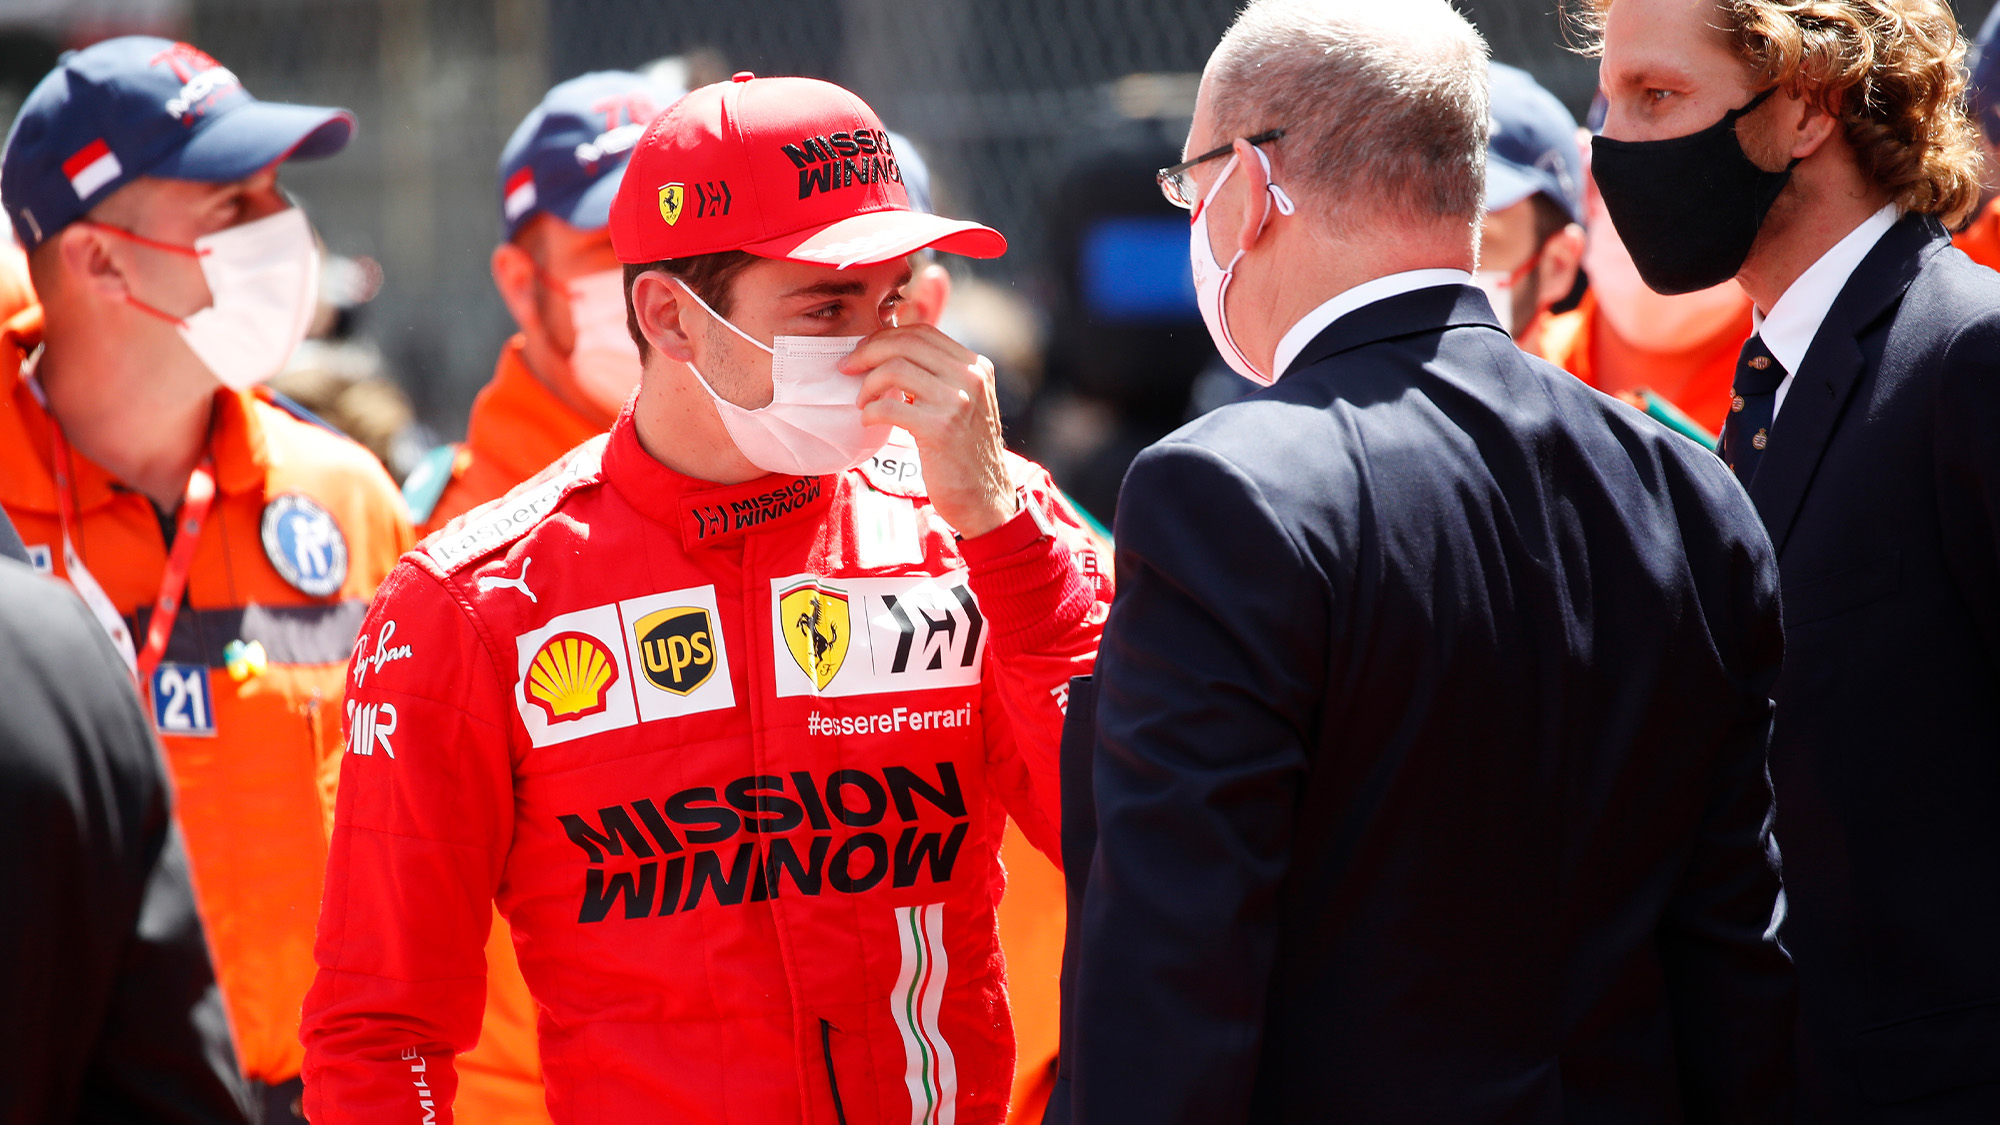 Prince Albert consoles Charles Leclerc after he was unable to start the 2021 Monaco Grand Prix